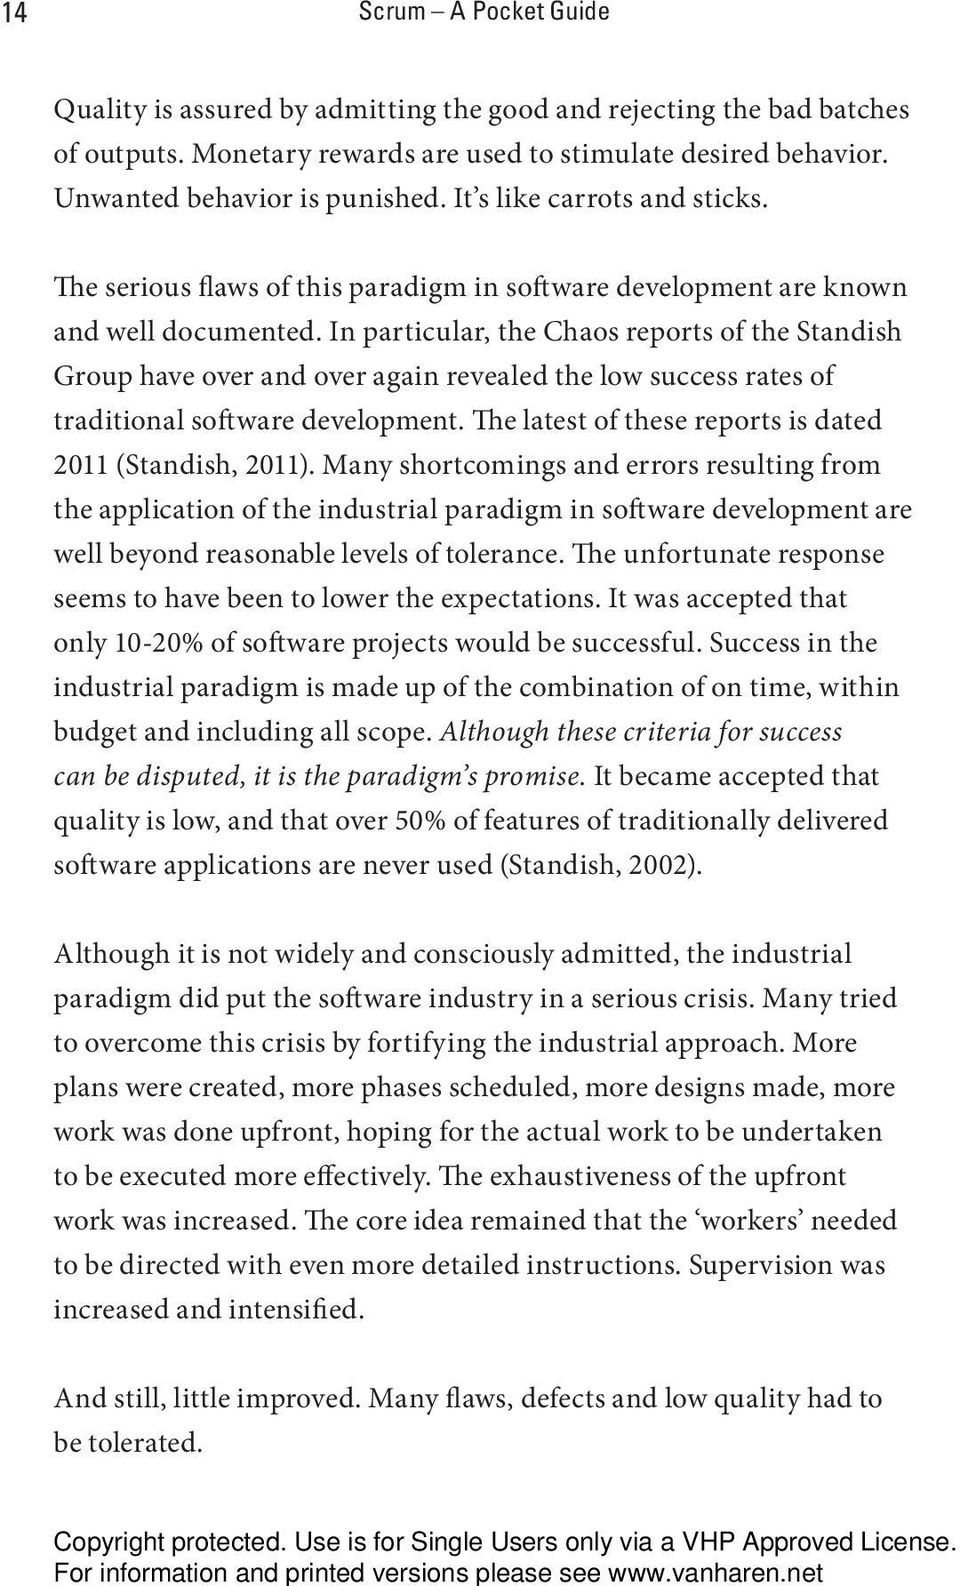 In particular, the Chaos reports of the Standish Group have over and over again revealed the low success rates of tradit ional software development.